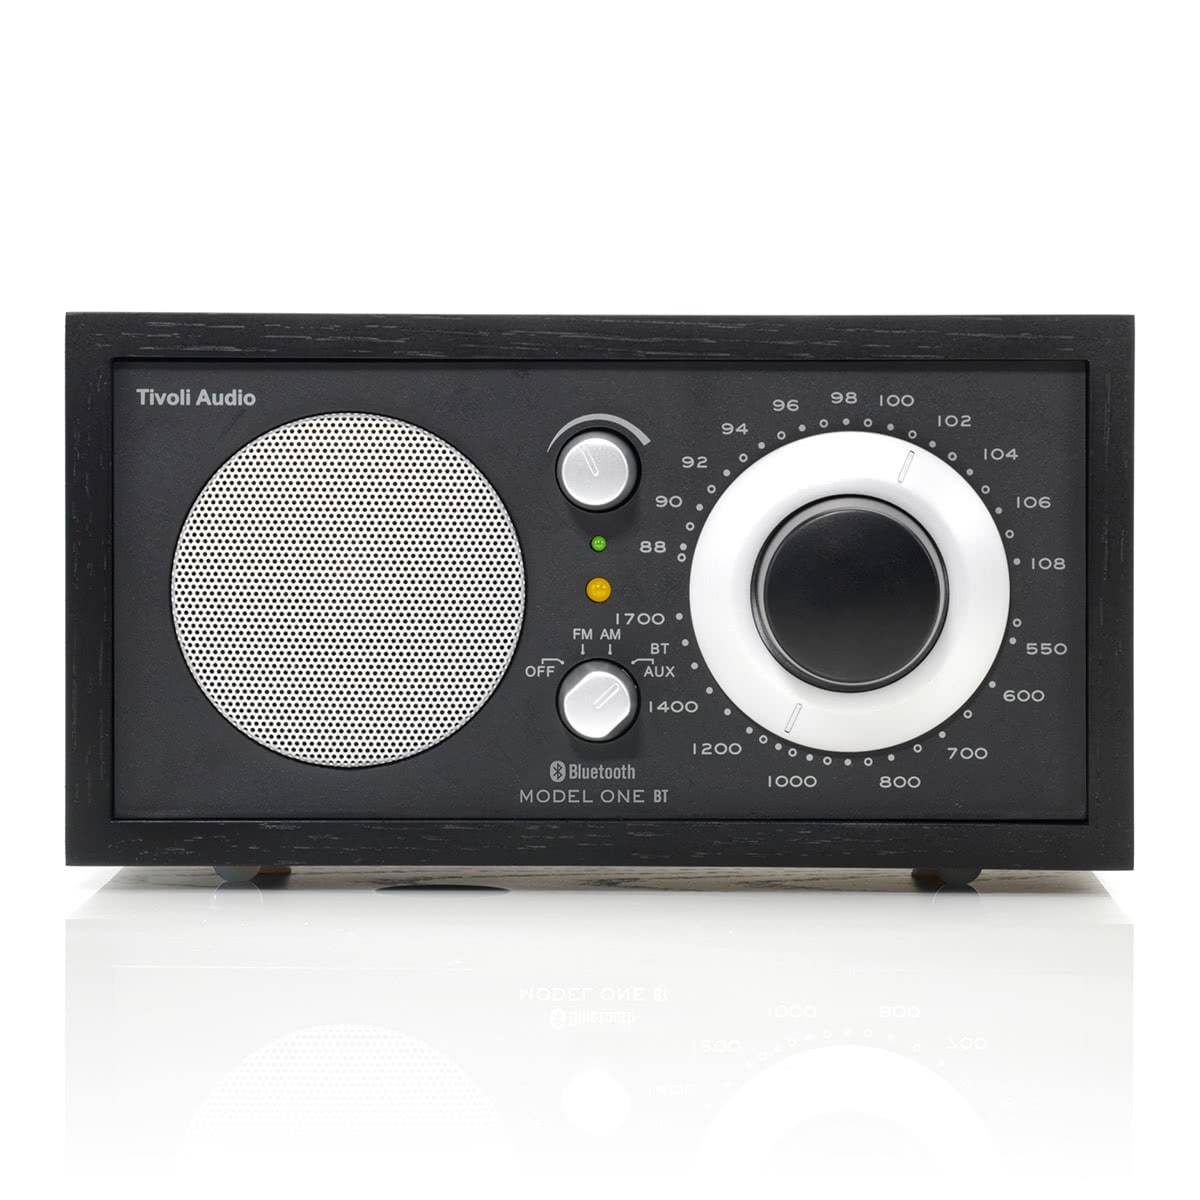 Tivoli Audio Model One Istruzioni Tivoli Audio Model One Am Fm Radio With Bluetooth Ebay